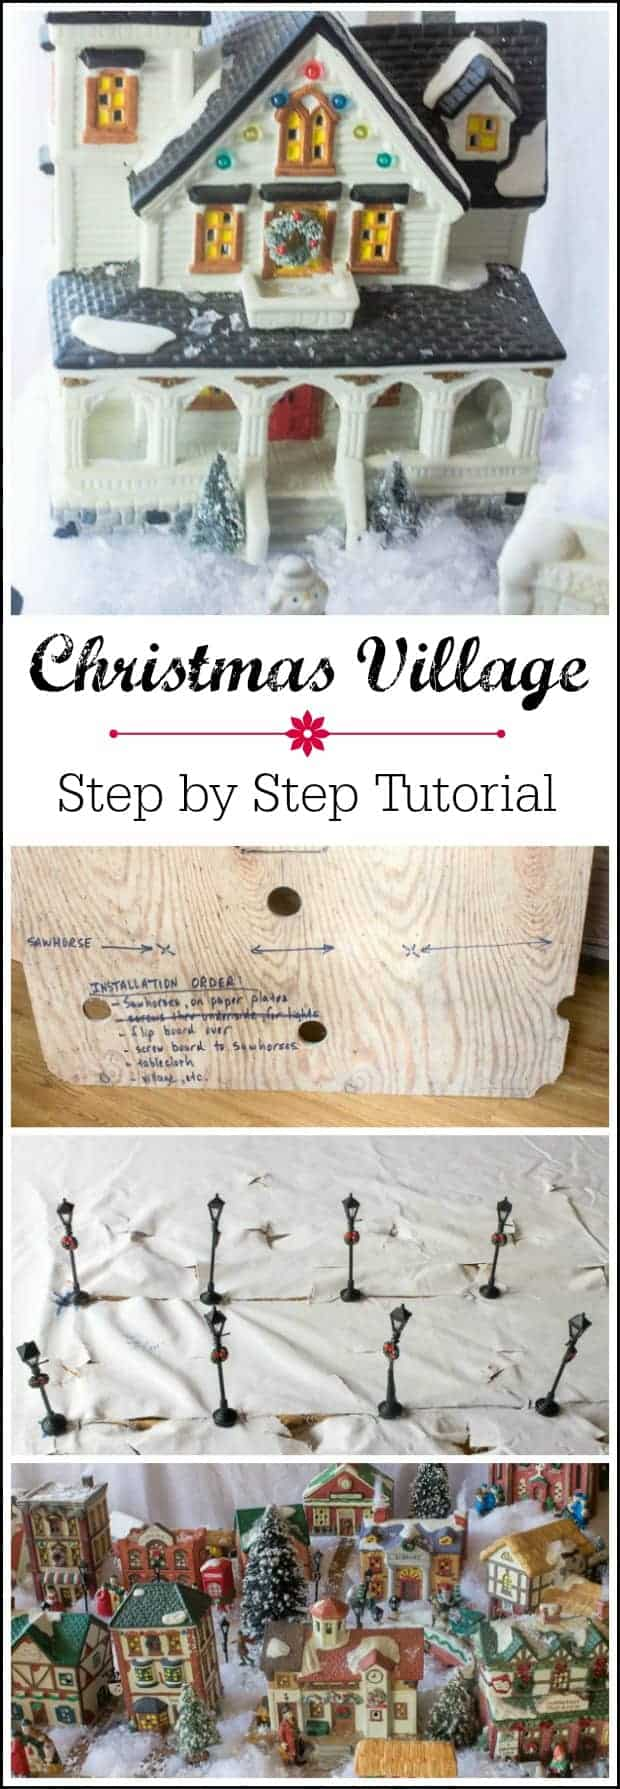 Step by step instructions on how to create a miniature Christmas village display with thrifty money saving tips. Kids young and old will love it!